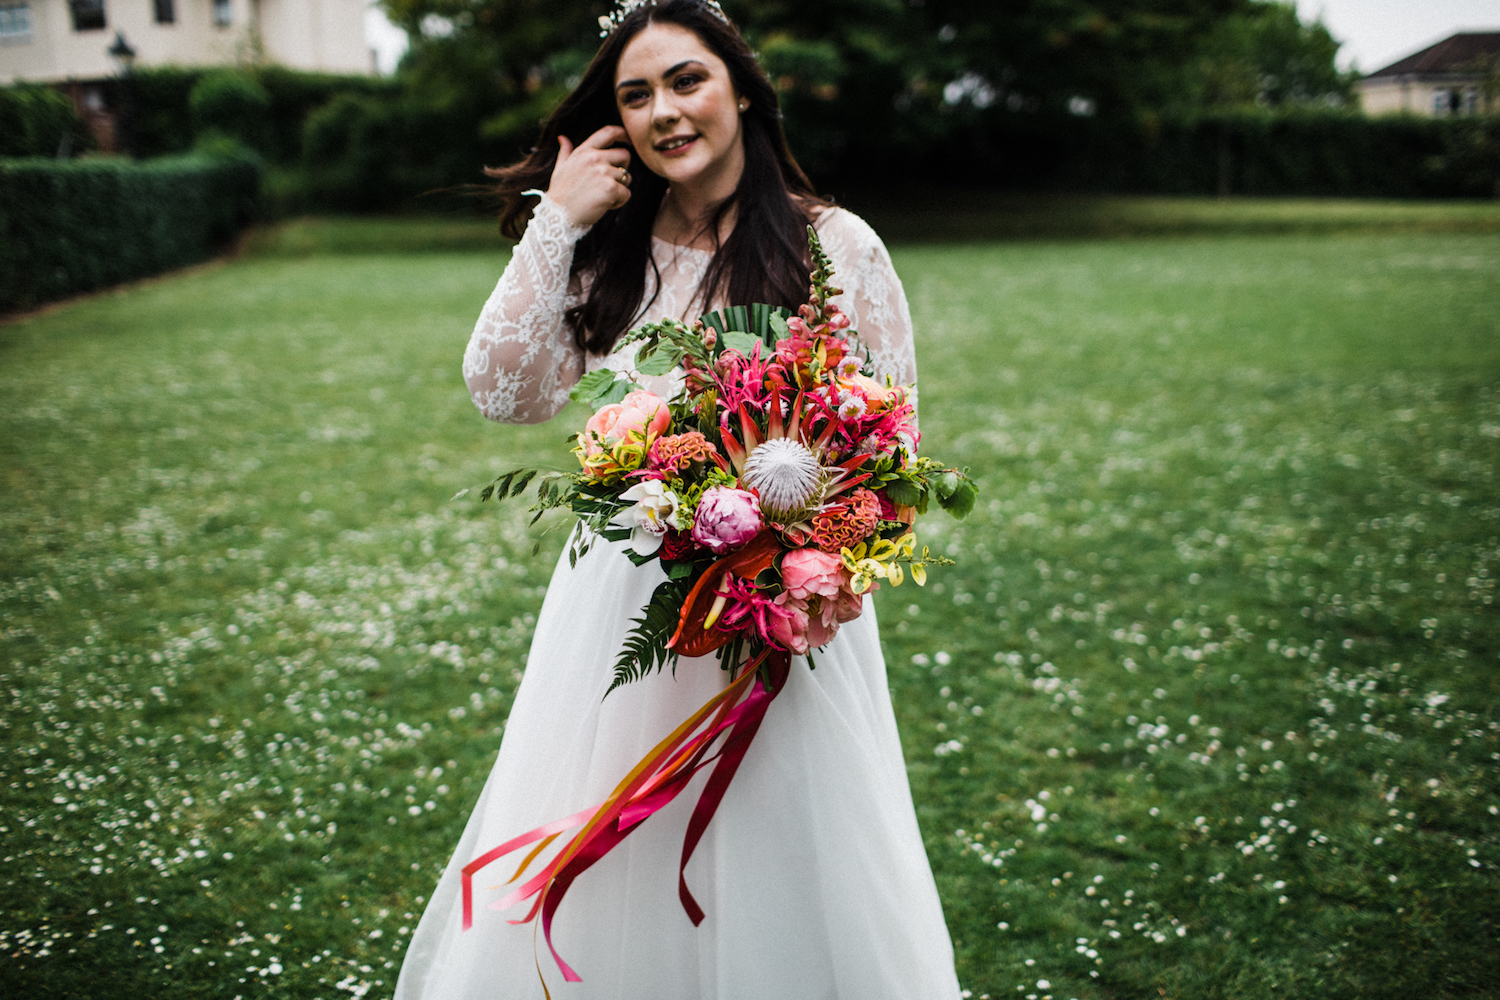 Stunning Bridal Separates, bright florals and a Tilly Thomas Lux Oceania crown for a beautiful wedding